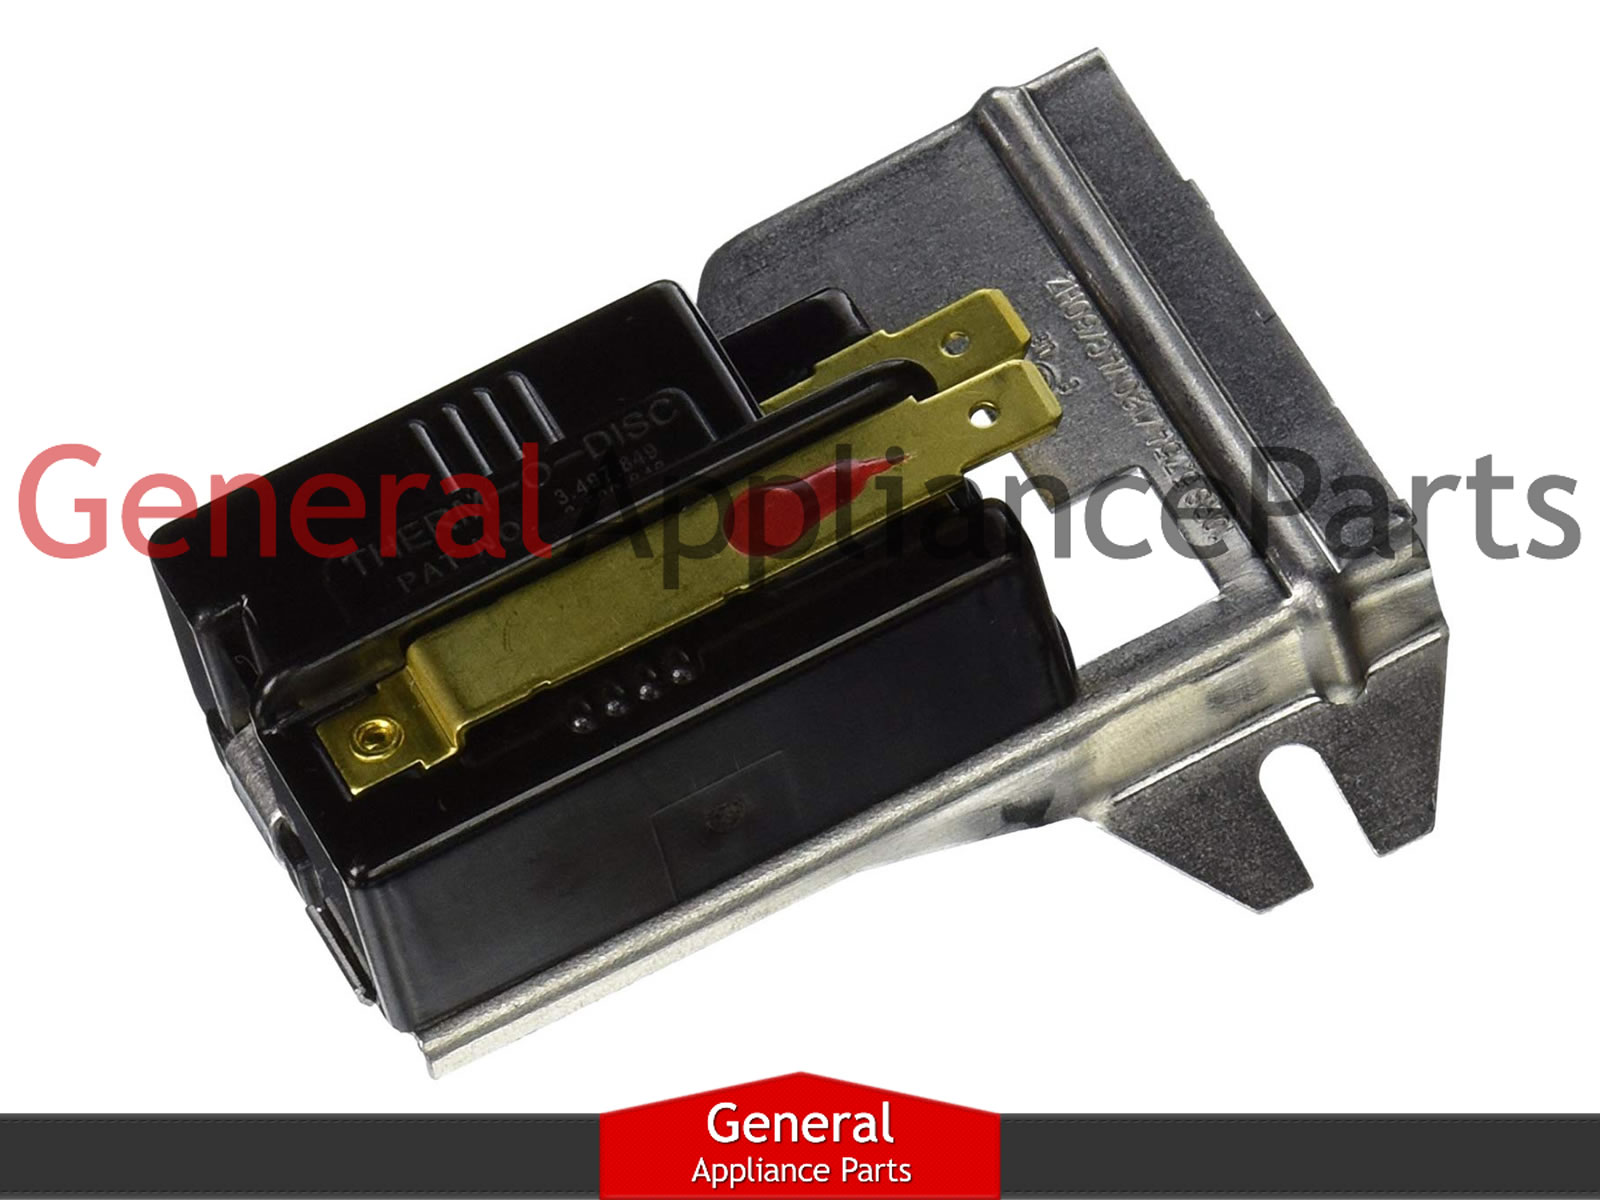 Details about GE General Electric Replacement Dryer Flame Sensor WE4X448 on